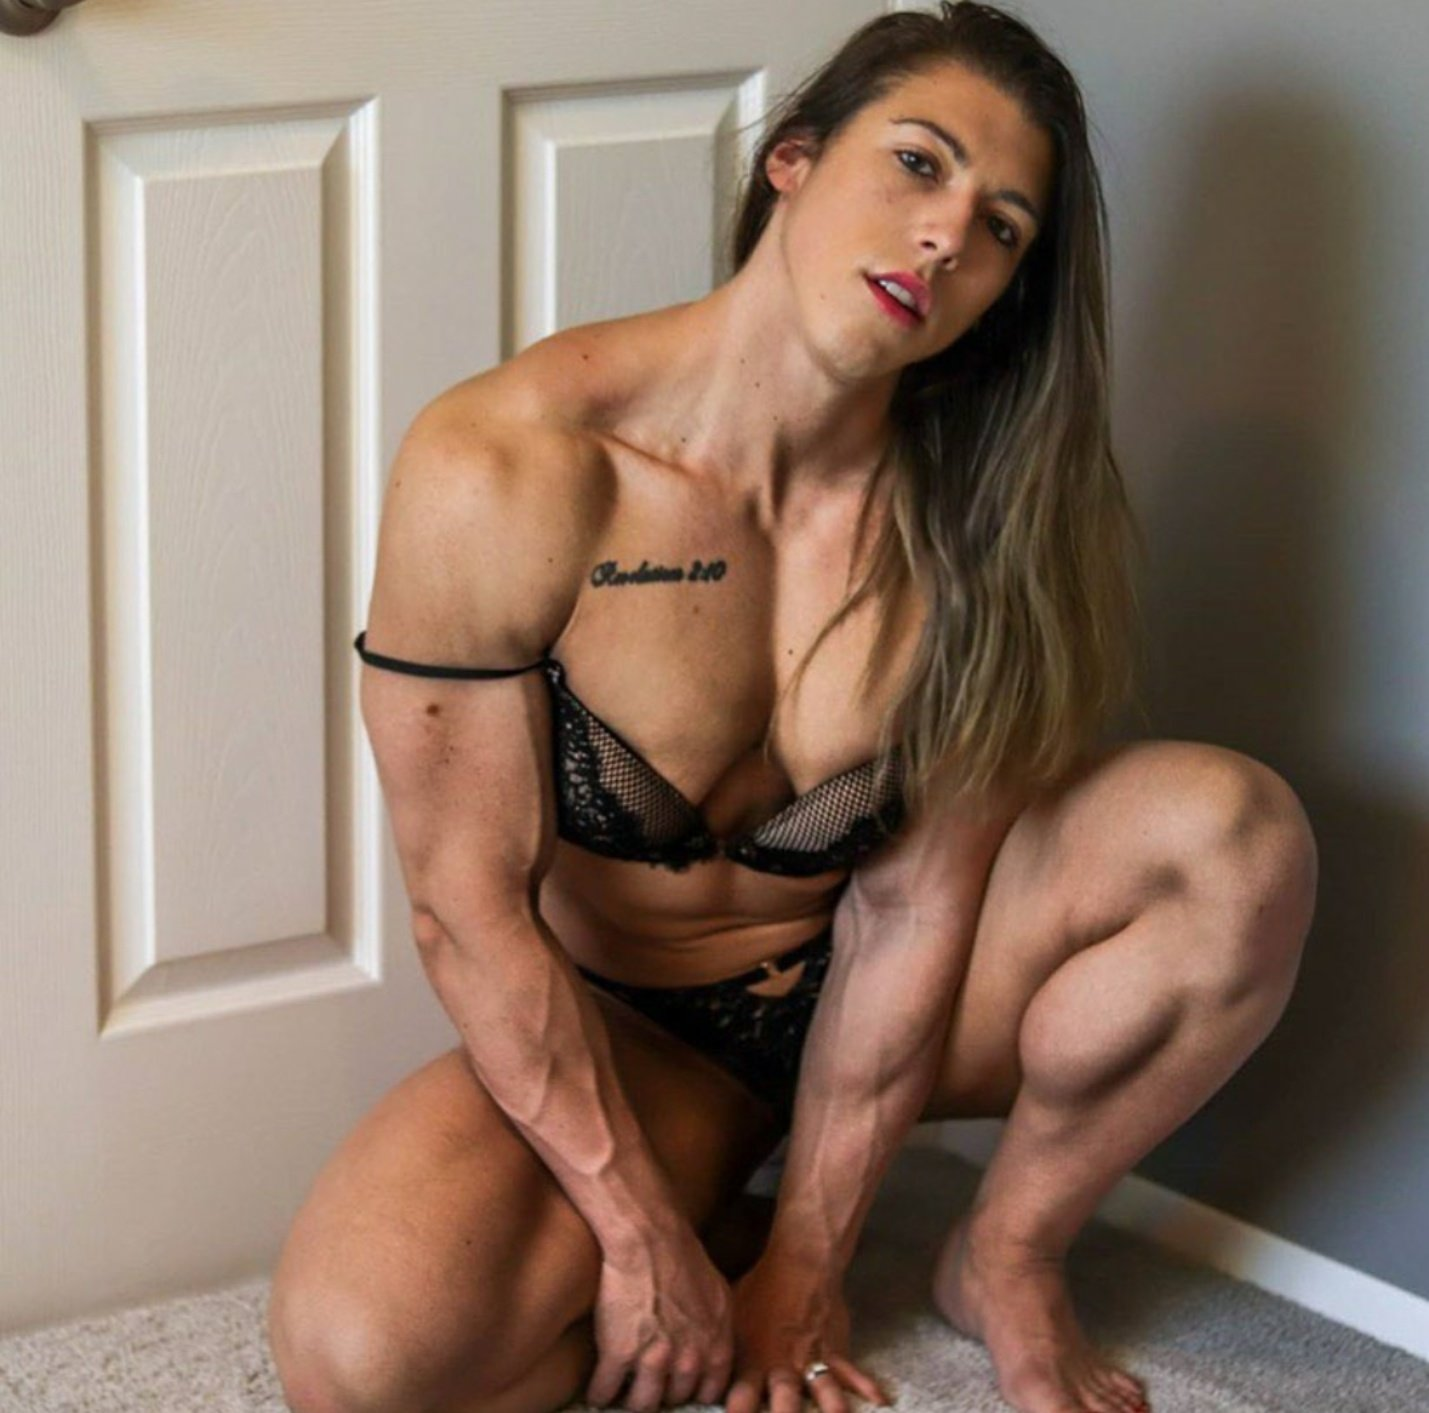 For super hot muscle beauties like @ShannonSeeley13 and so many more follow @bendtothetruth https://t.co/xKFw169rBa